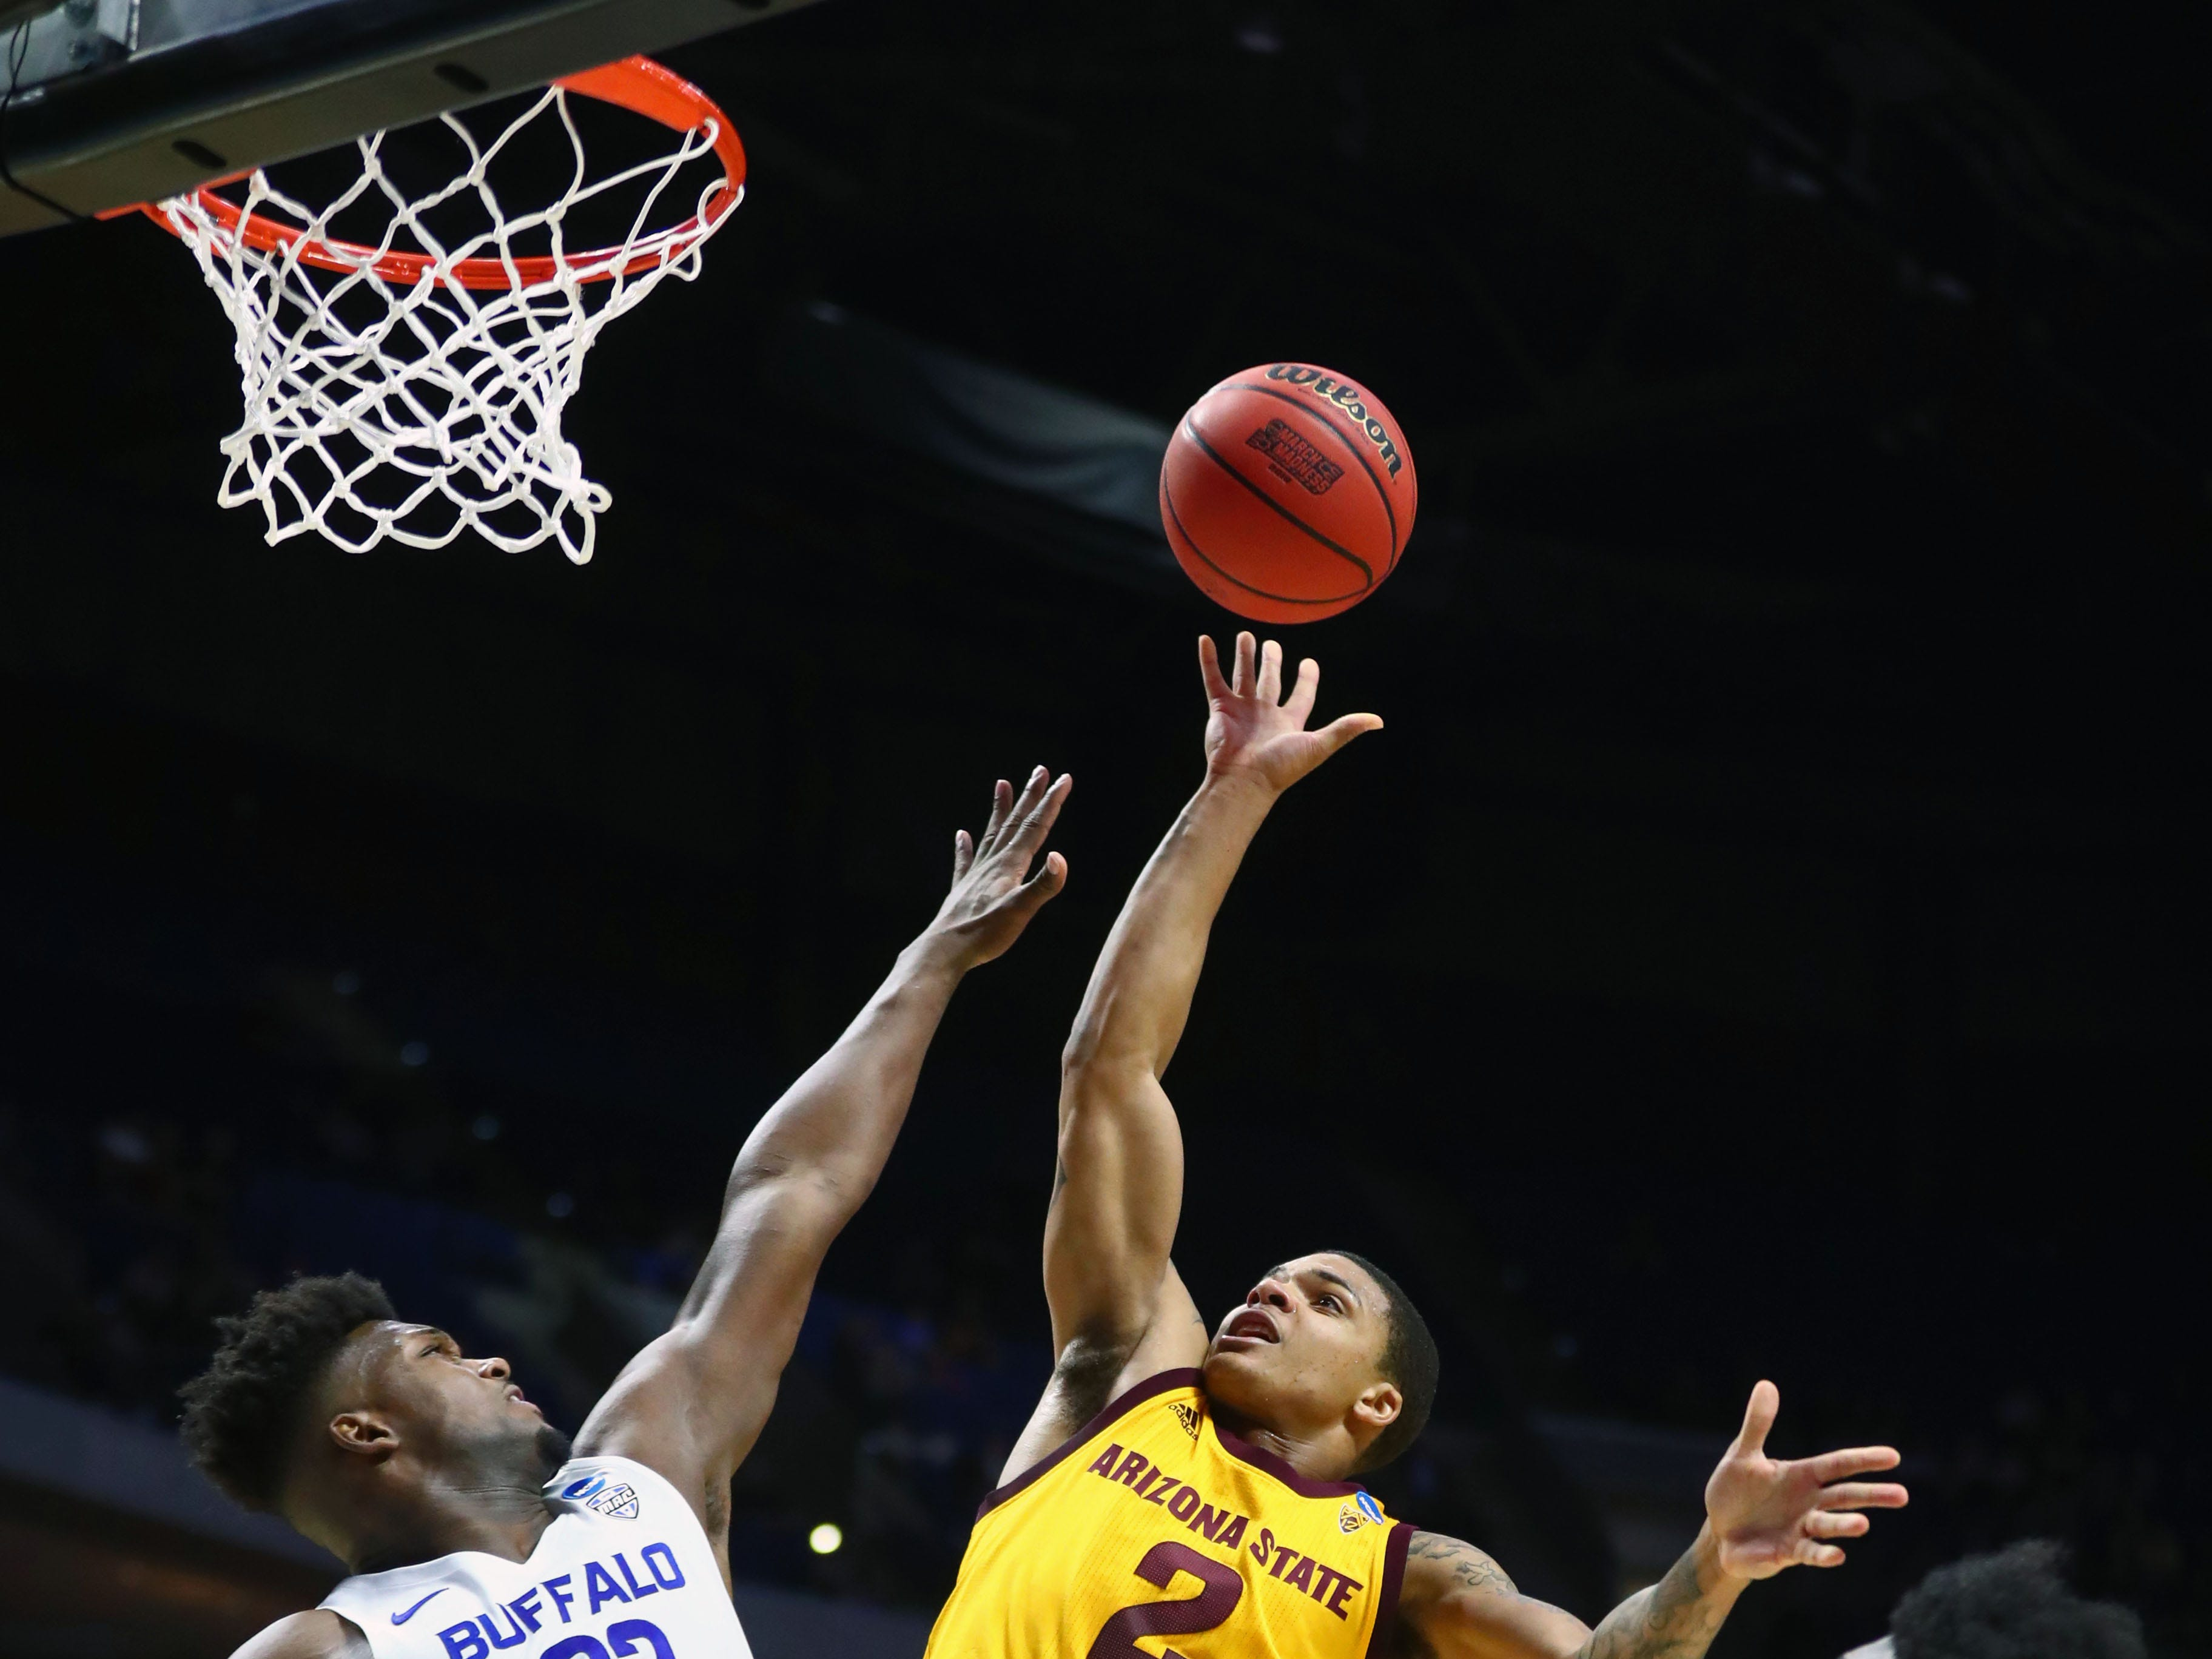 Mar 22, 2019; Tulsa, OK, USA; Arizona State Sun Devils guard Rob Edwards (2) shoots in front of Buffalo Bulls forward Nick Perkins (33) during the first half in the first round of the 2019 NCAA Tournament at BOK Center. Mandatory Credit: Mark J. Rebilas-USA TODAY Sports